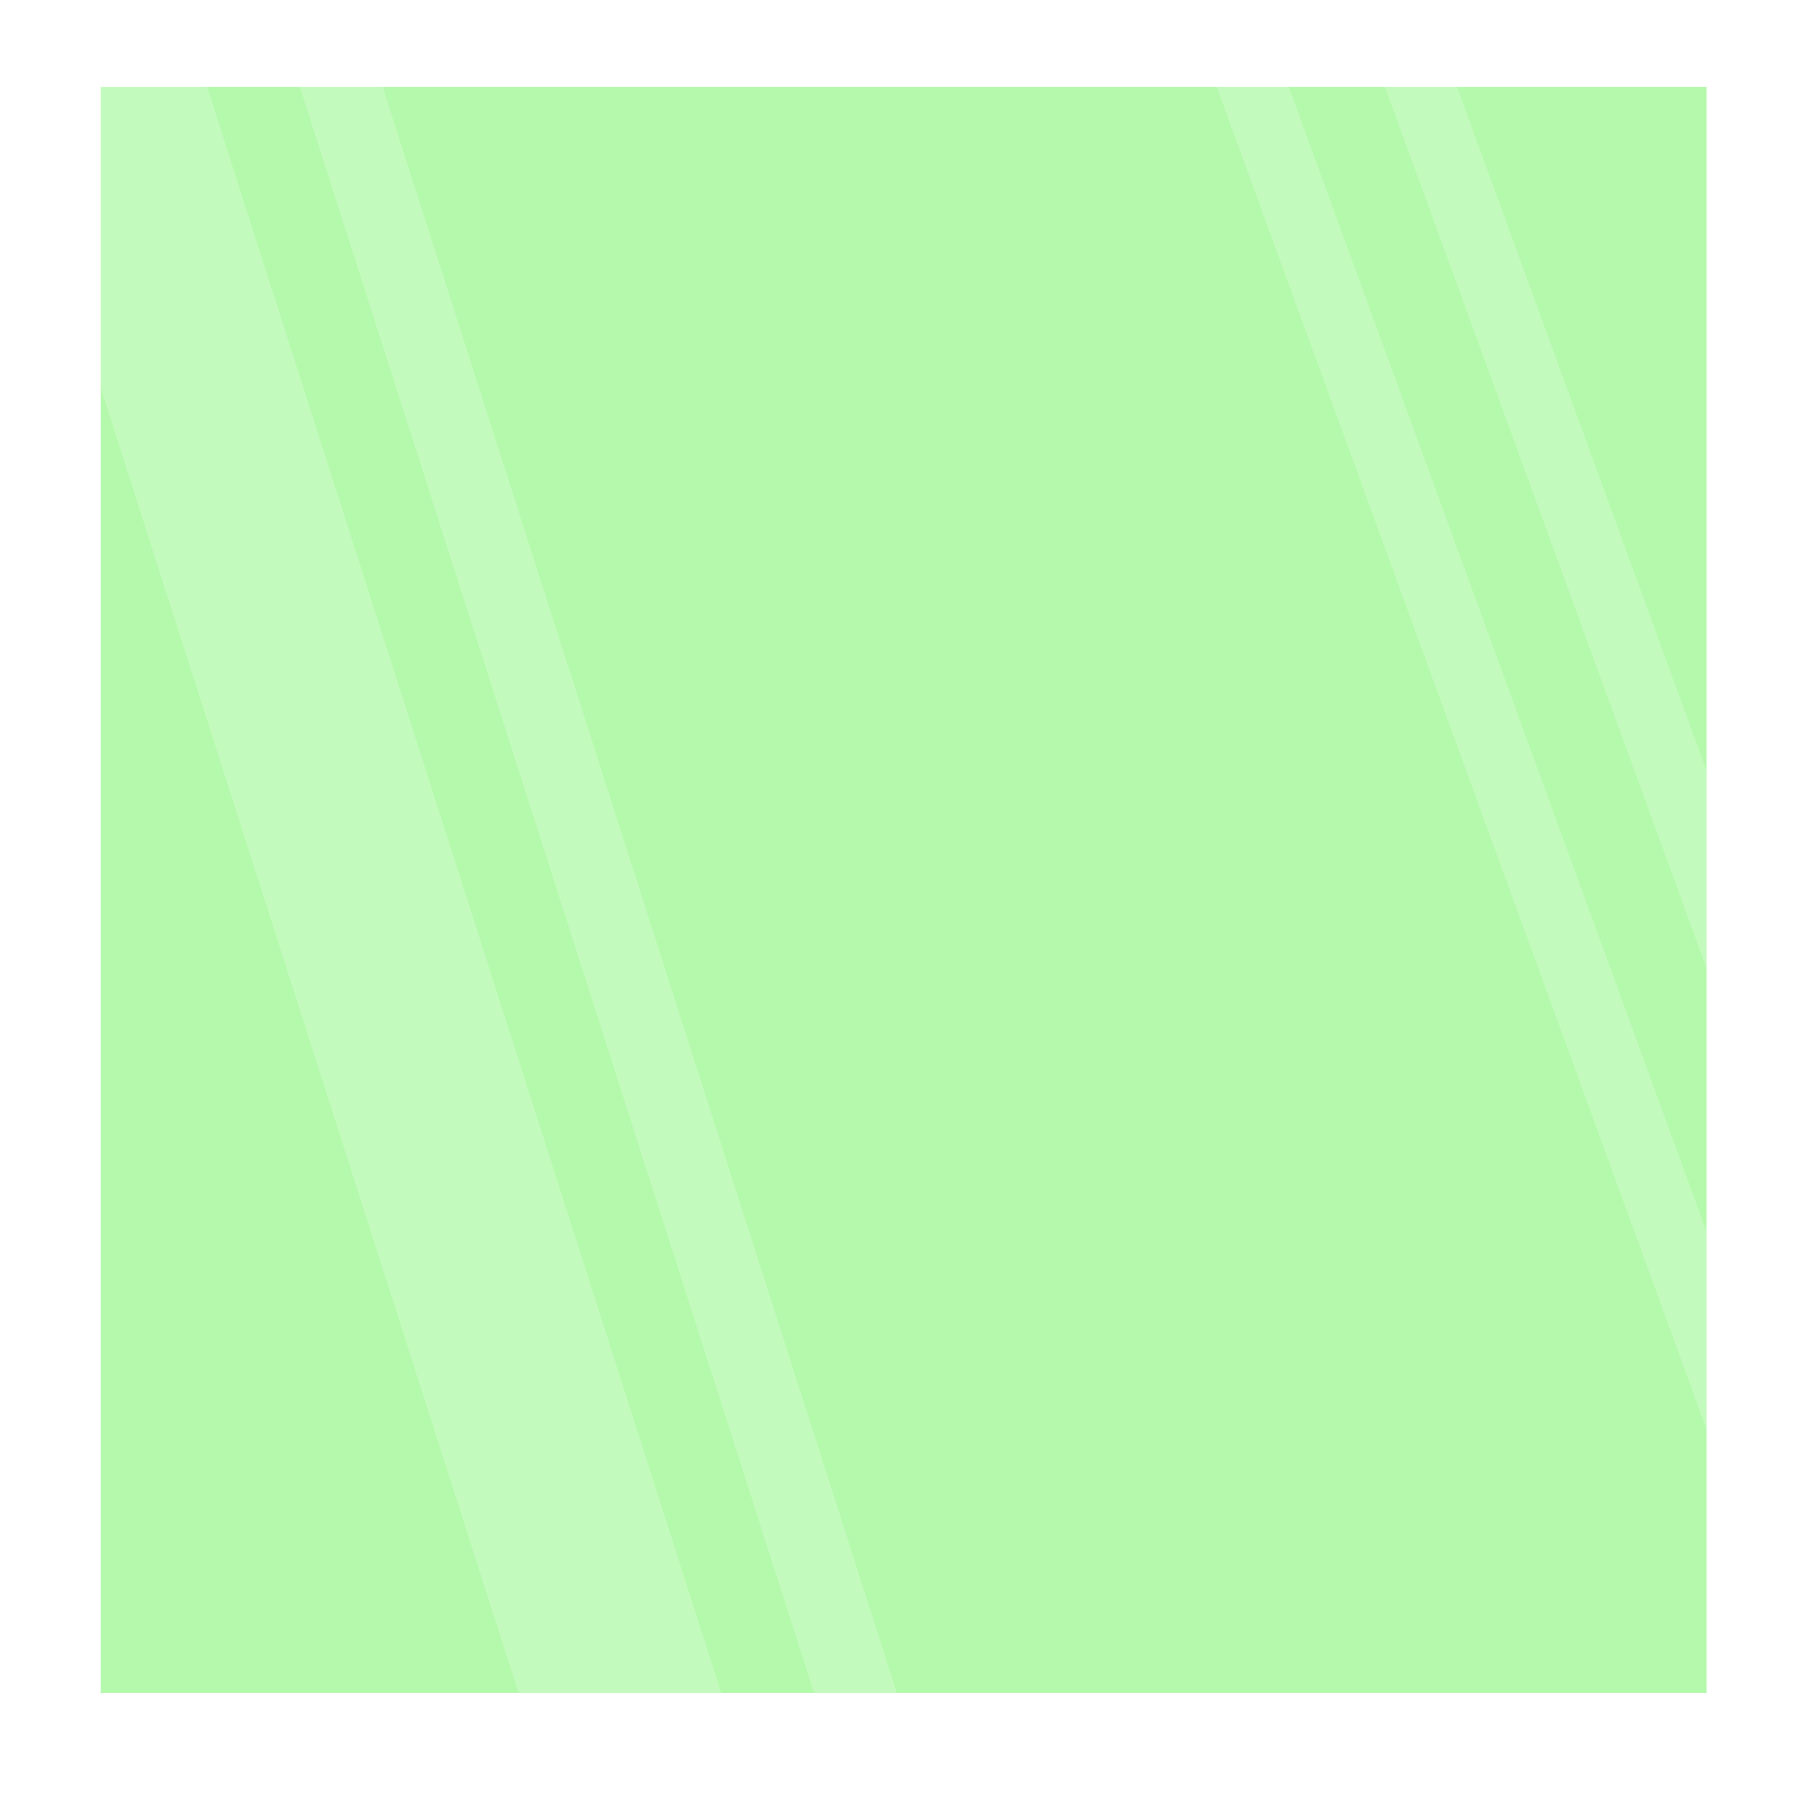 Green 8x8 Glowing Glass Tile Image